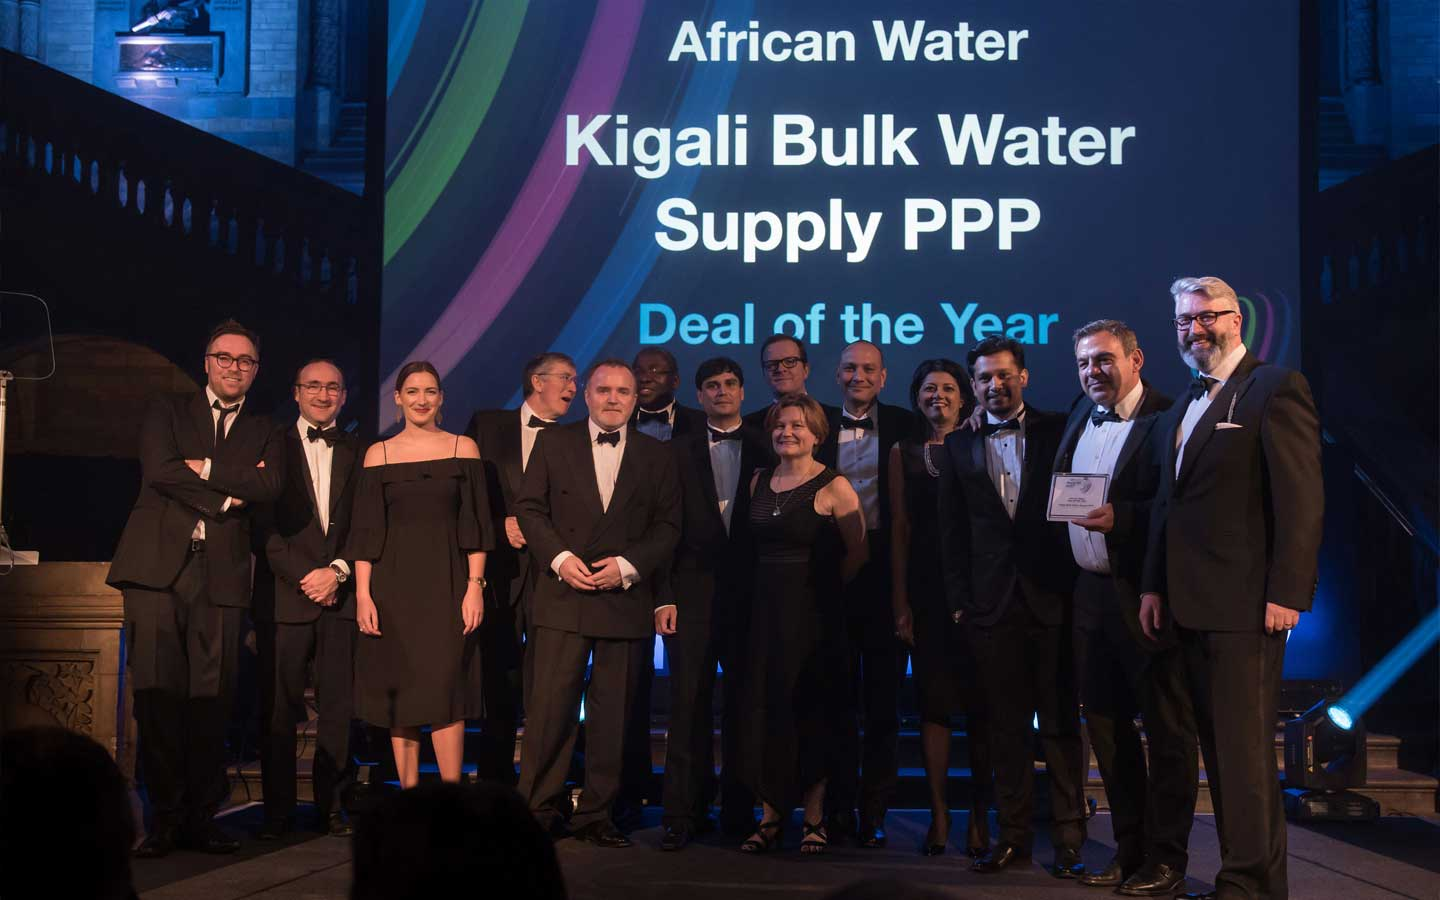 Metito wins the prestigious IJ Global African Water Deal of the Year for Kigali Bulk Water Supply PPP